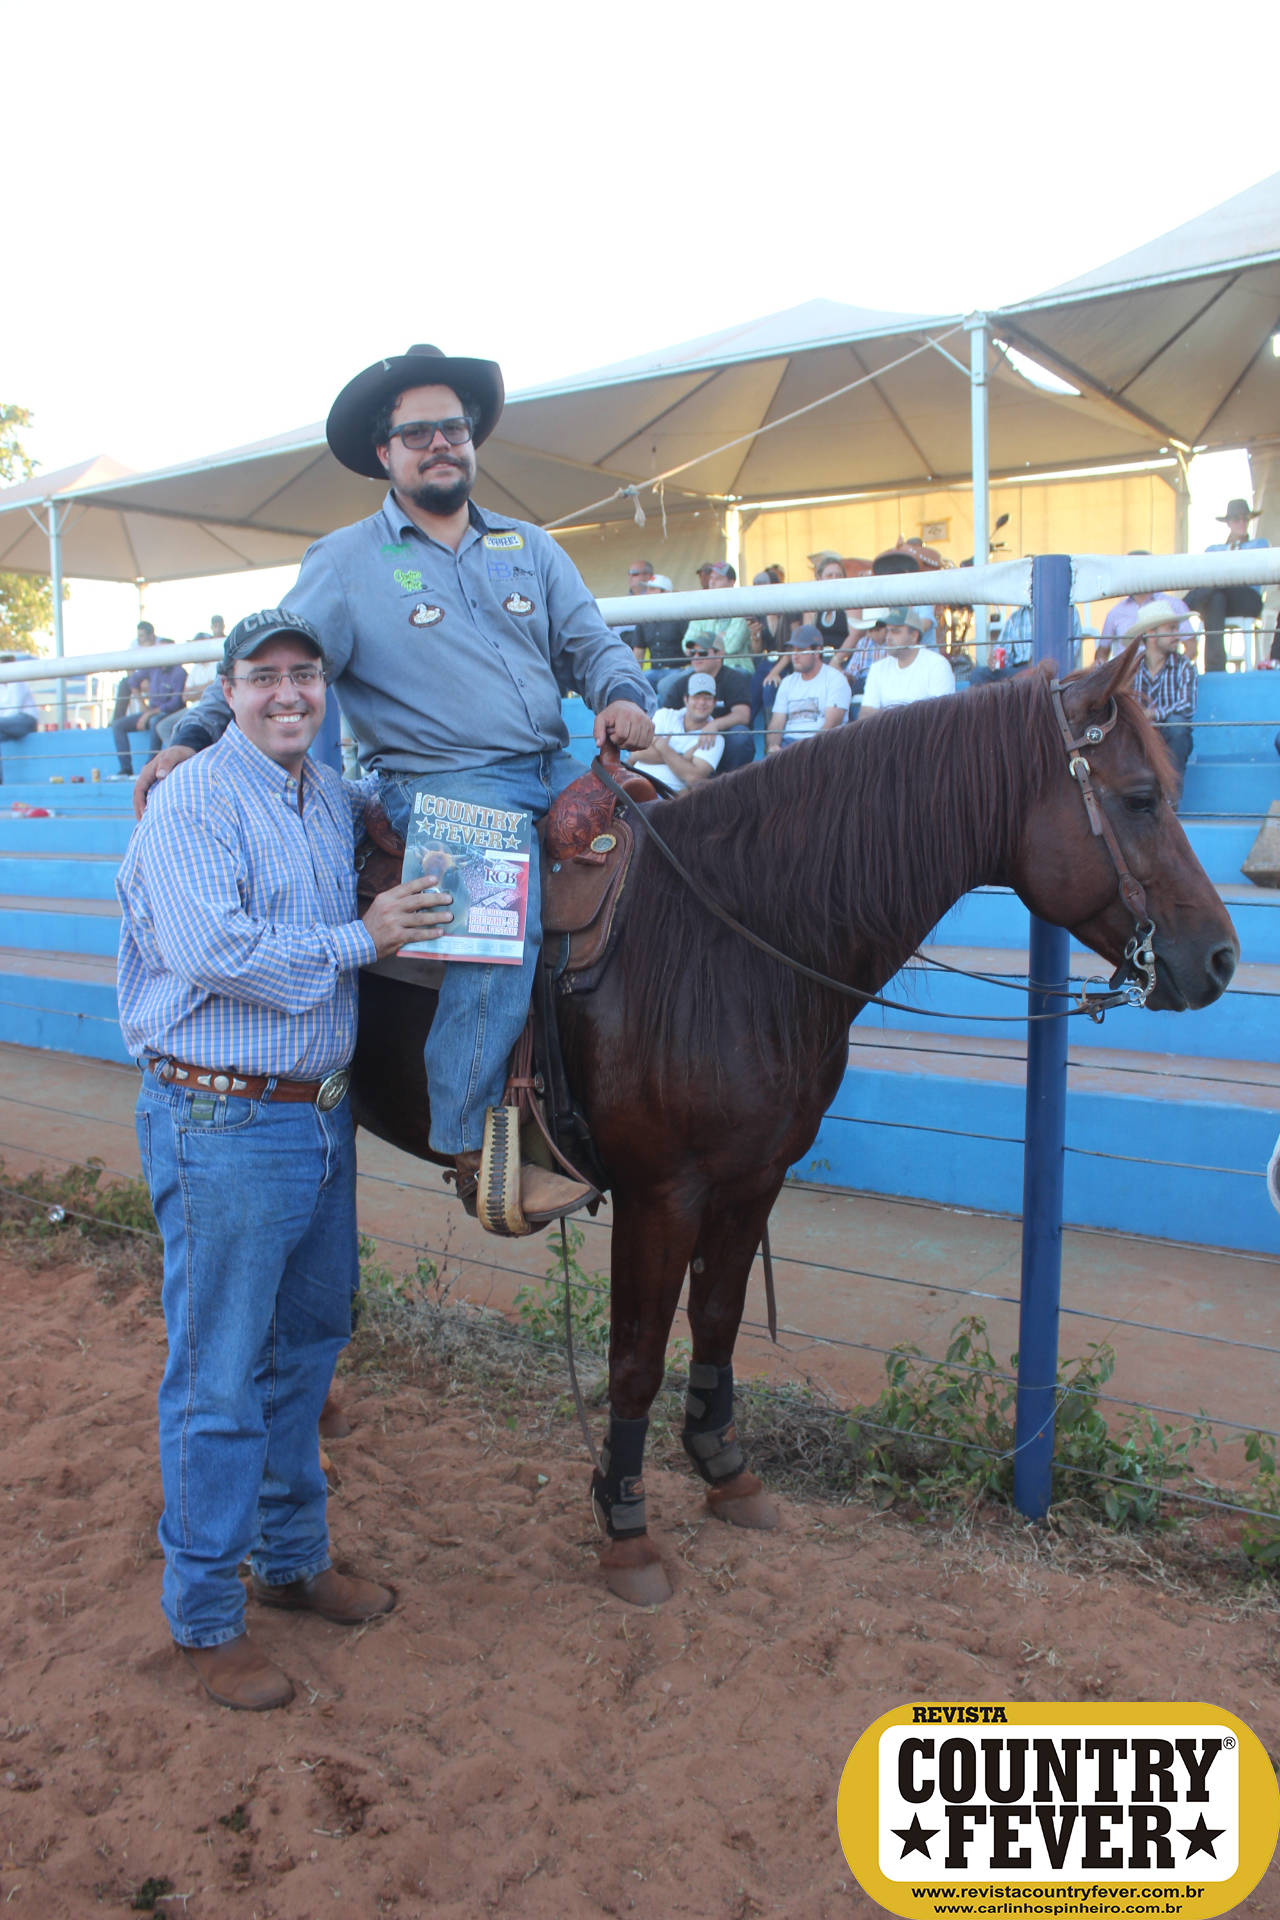 1ª PROVA DE RANCH SORTING - THIAGO GALORO - FLOREAL-SP 03/06/2017